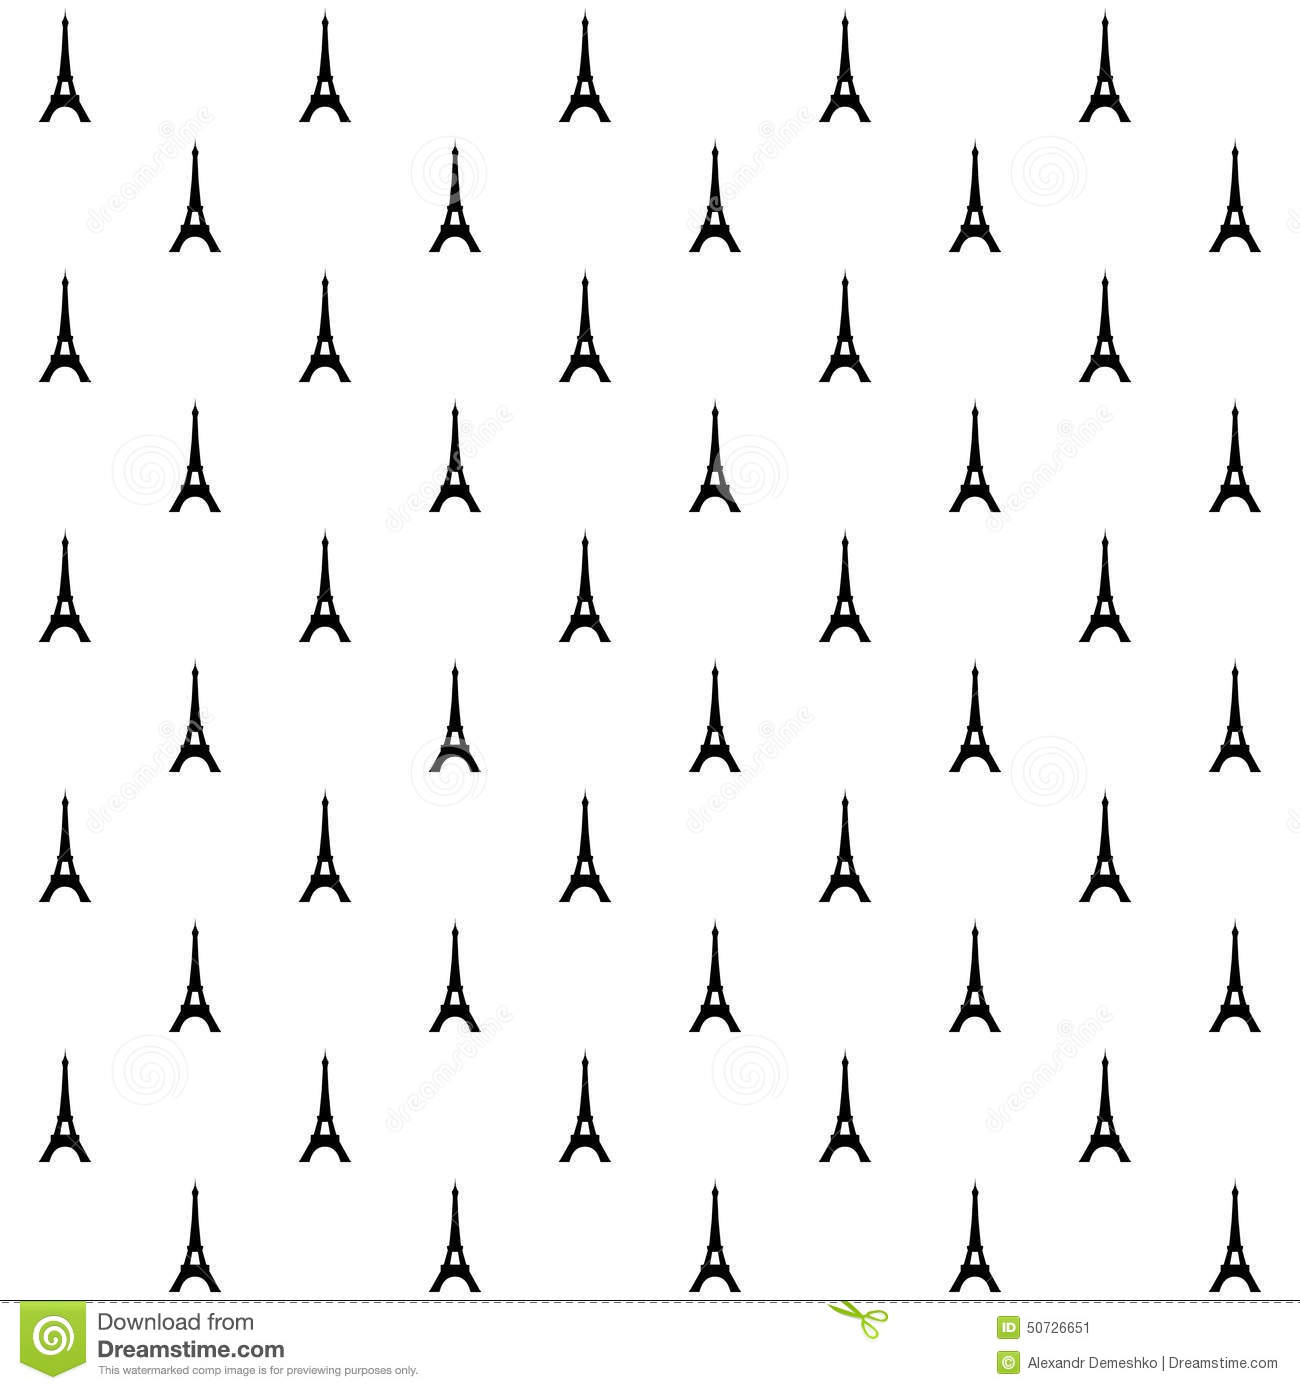 Stock Illustration Paris Eiffel Tower Seamless Pattern Vector Eps Image50726651 further I Love You Phrases Valentine Day Print Design Vector Set also Key Old Skeleton Lock Metal Door 30417 as well Stock Illustration Wedding Icon Set Vector Eps Image49079880 also Stock Illustration Hand Drawn Ornate Tobacco Pipe Smoke  ing Out Vintage Style Elegant Boho Hipster Religion Spirituality Romance Tattoo Image61112621. on vintage romance illustrations